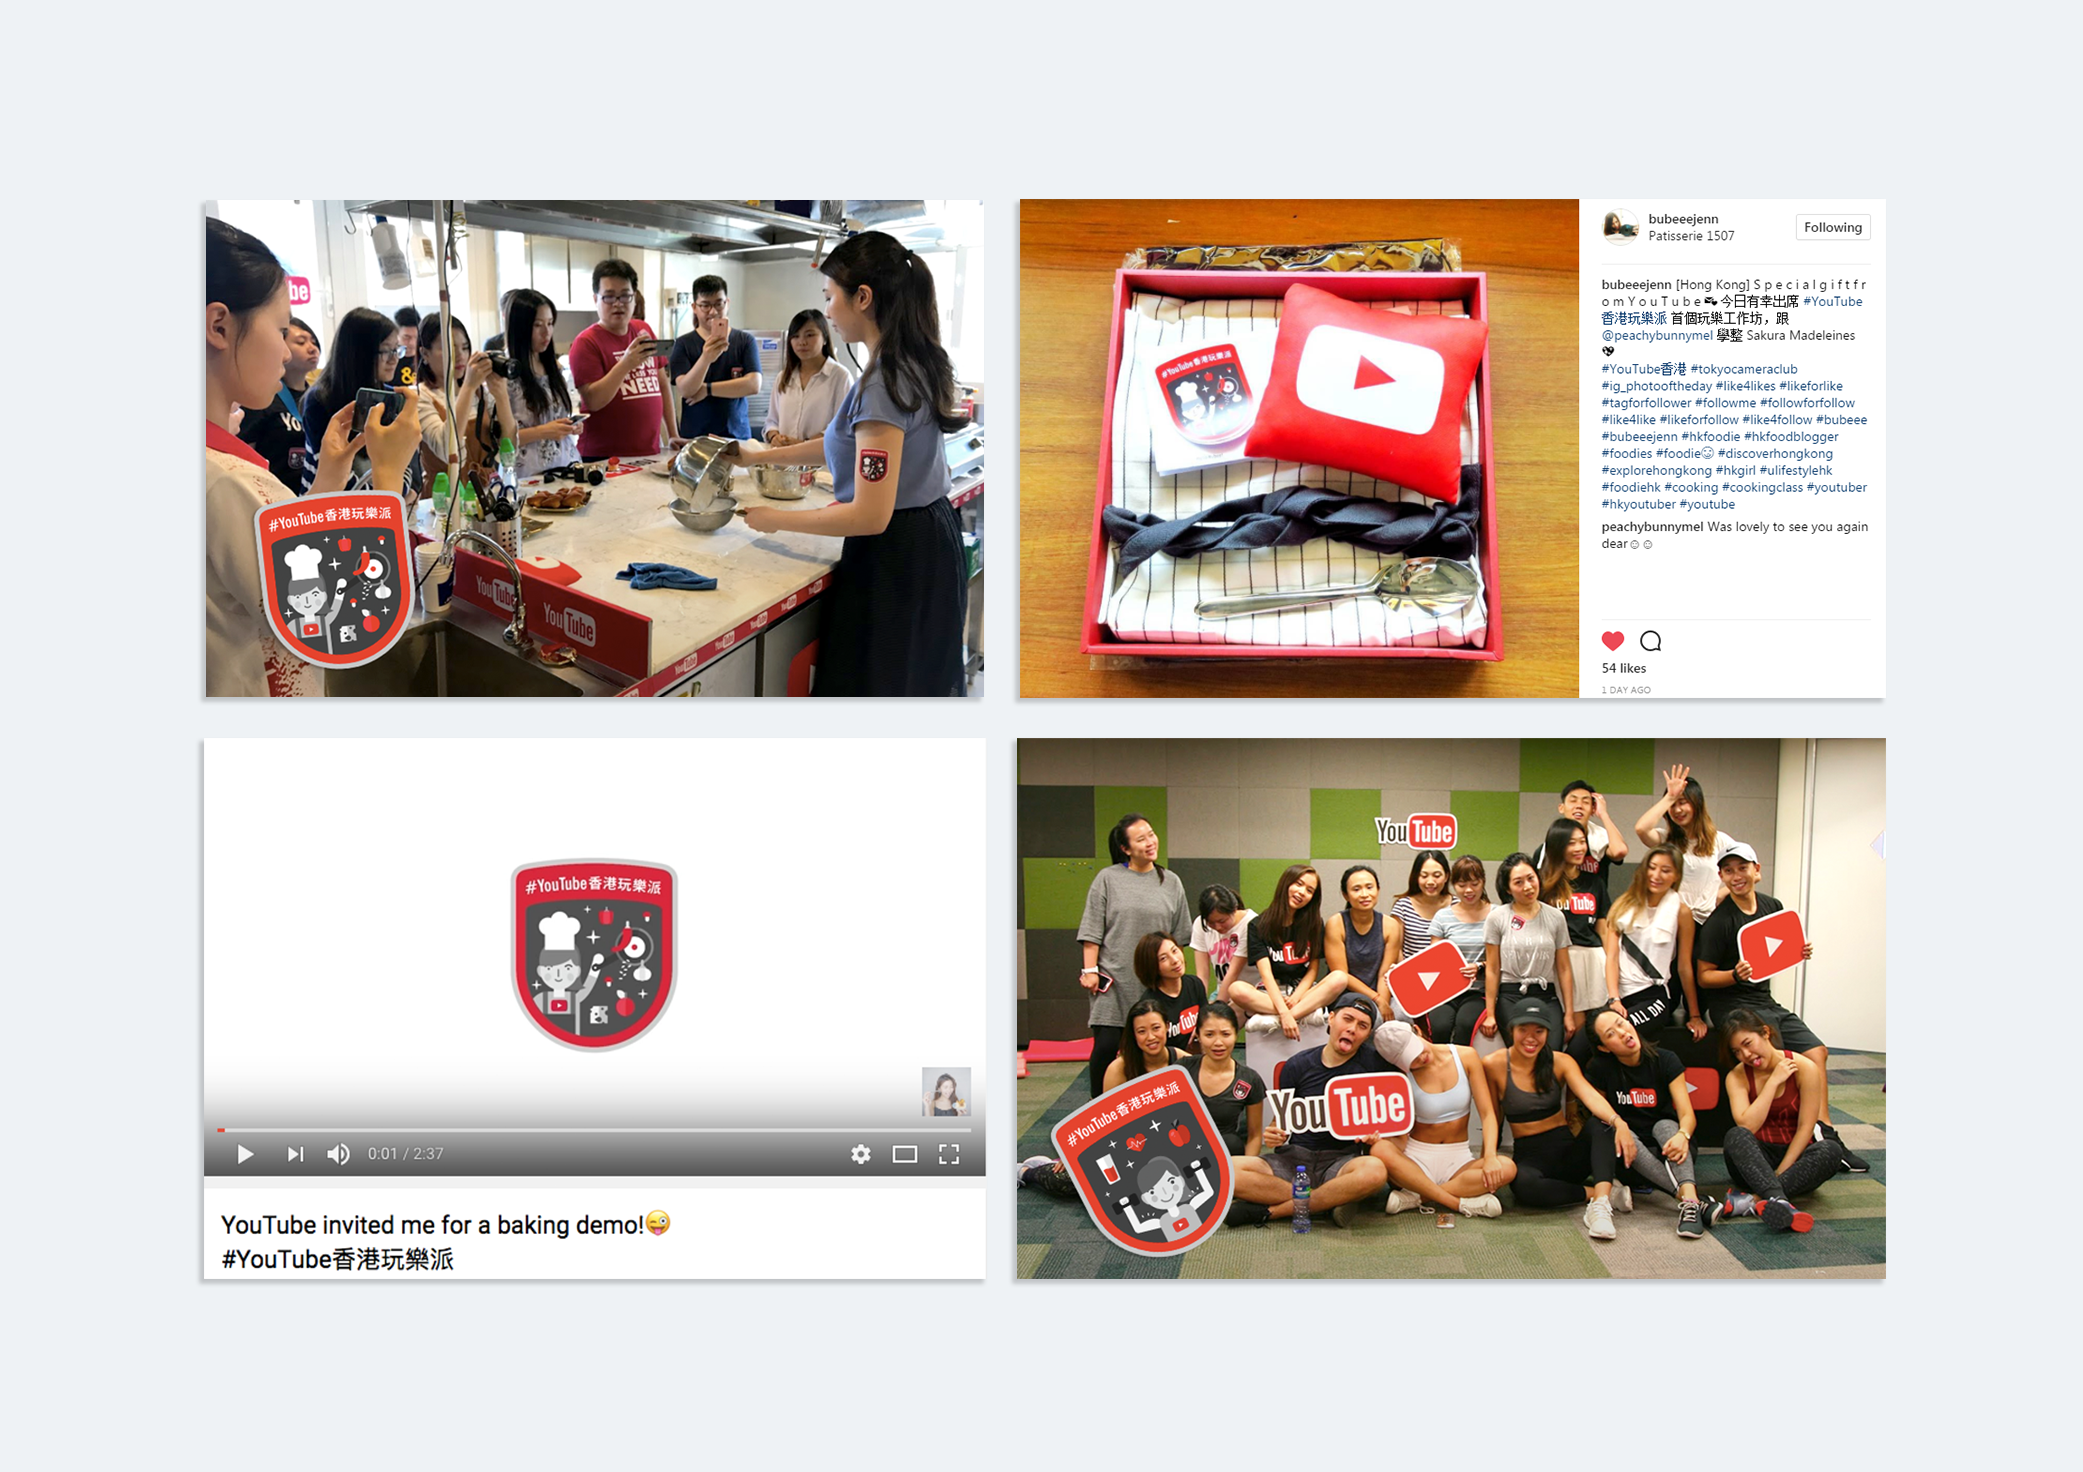 YouTube Fun Class workshop, welcome gifts, swags and YouTube channel.